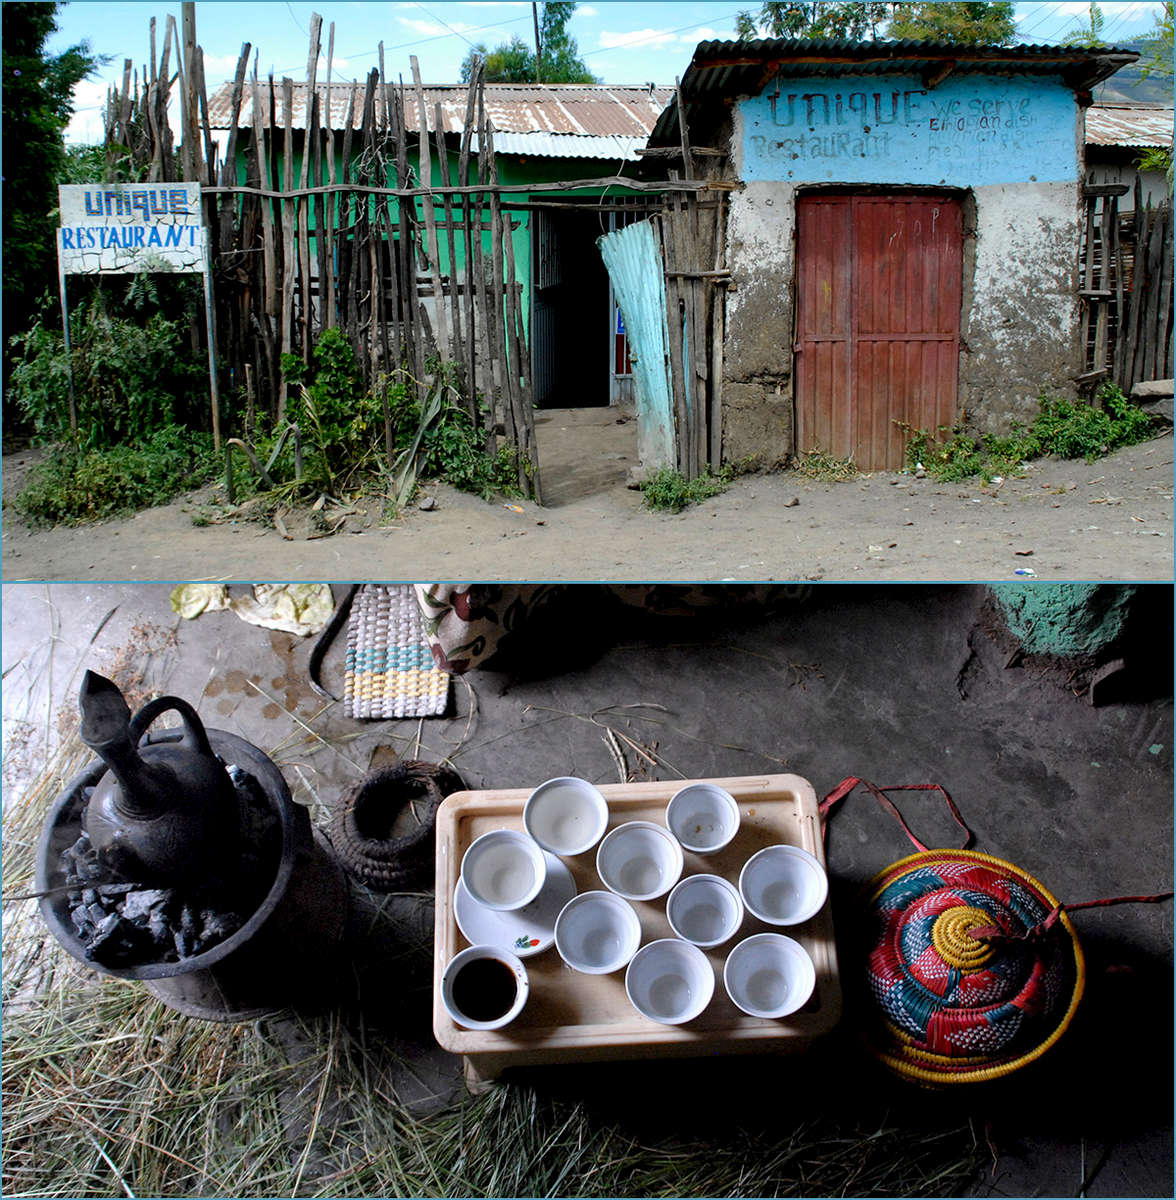 Ethiopia-The-Unique-Restaurant-and-Coffee-culture-Carl-Kravats-Photography